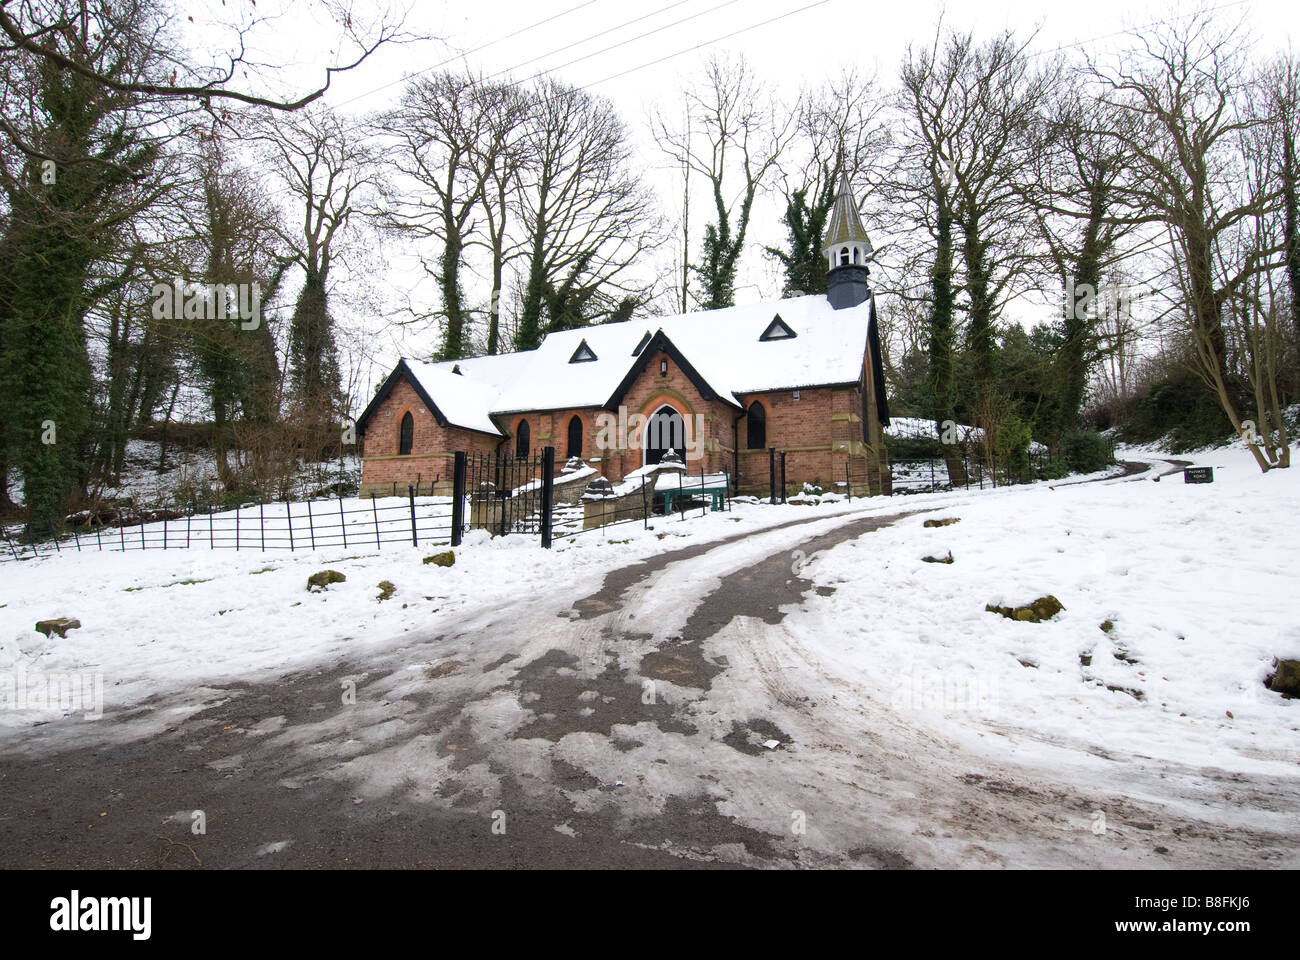 The Church Of St Chad With Snow Church Of England Church Mansfield